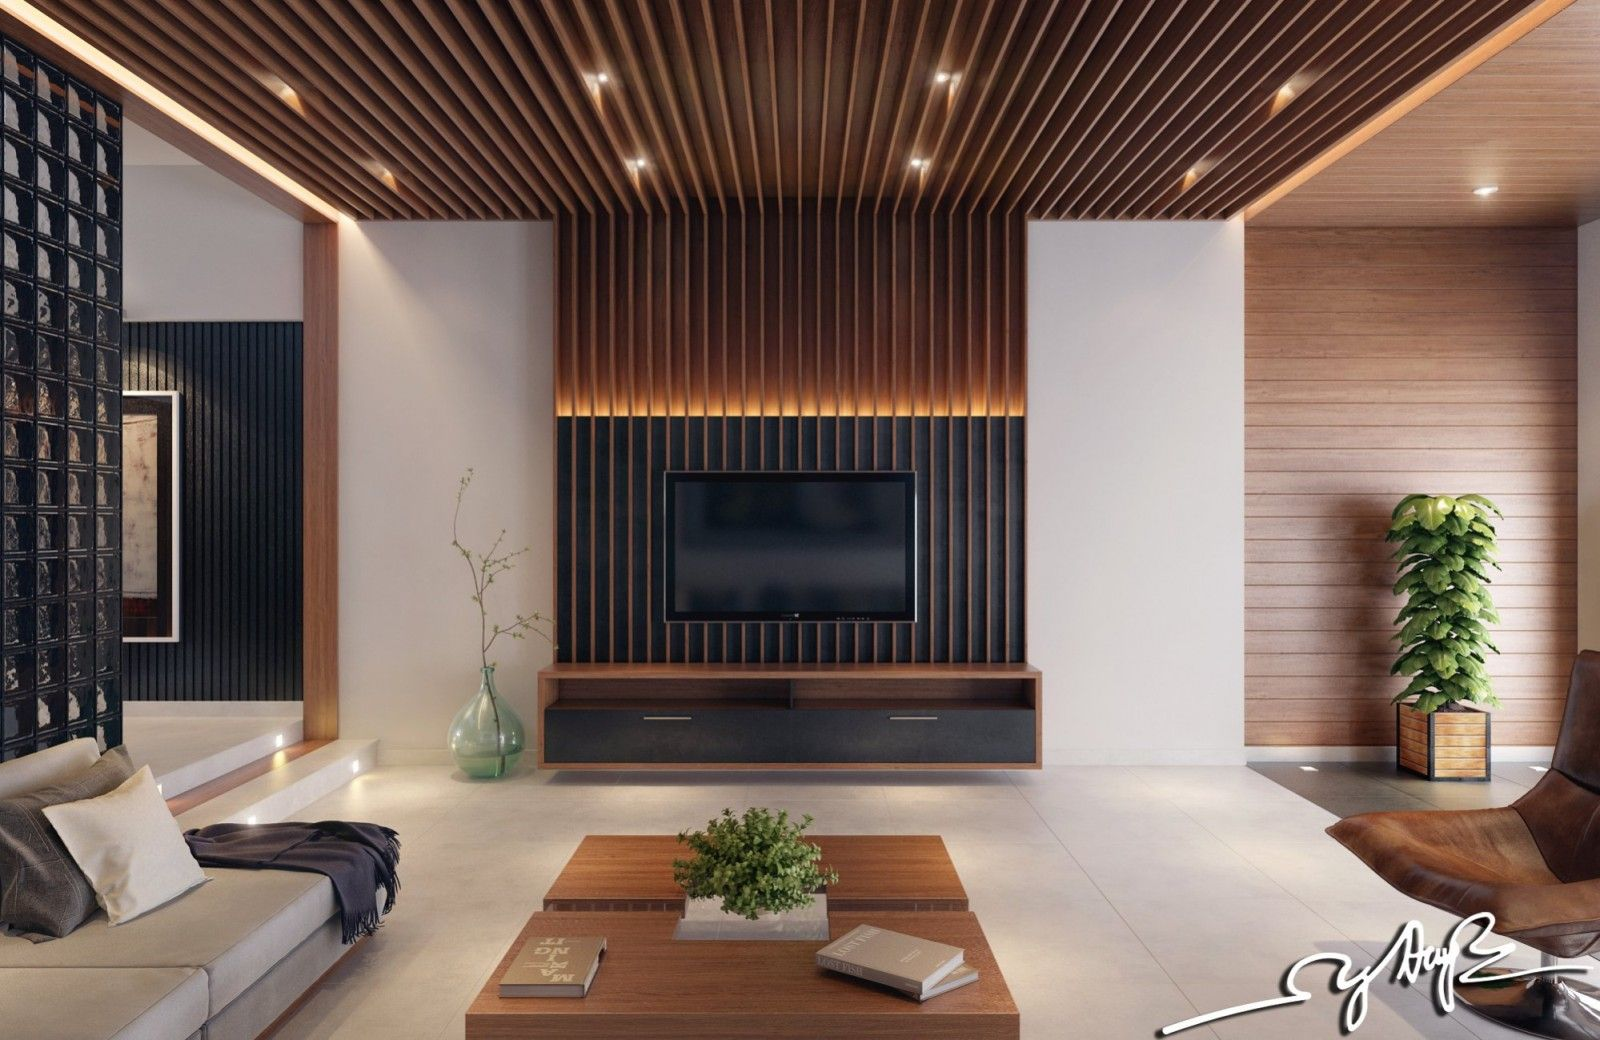 Lines on ceiling merge vertically with fireplace , Vertical